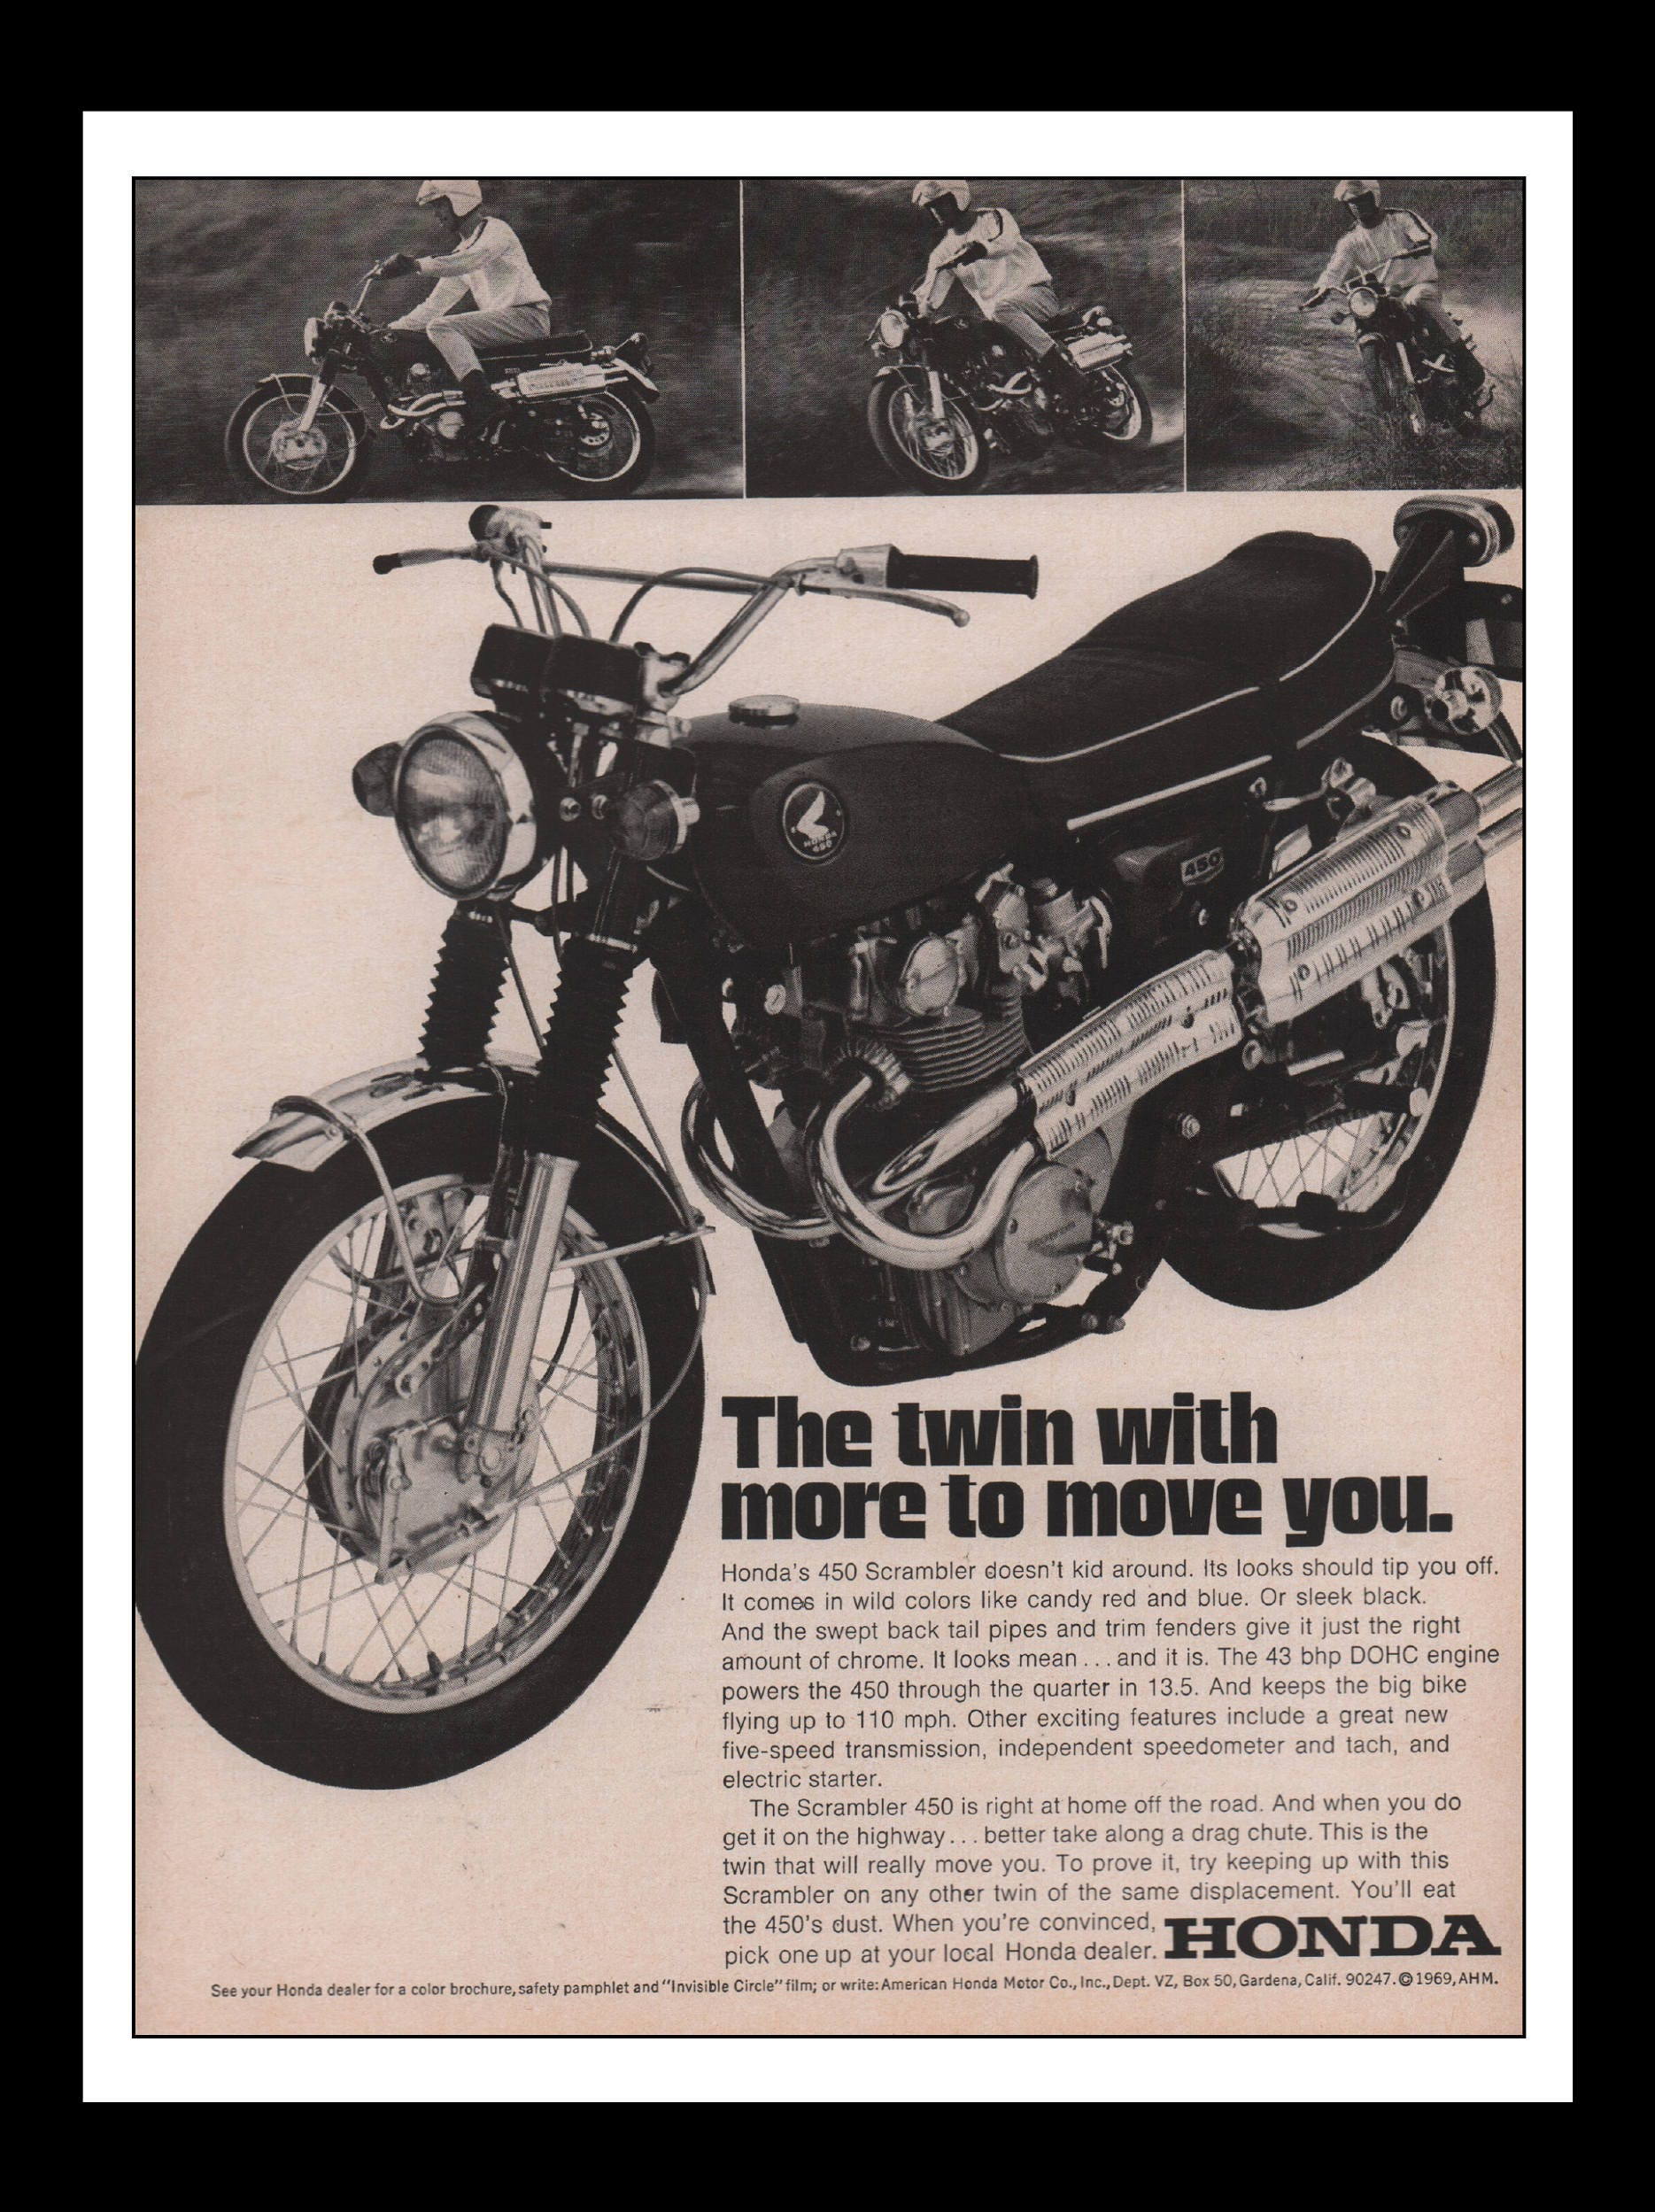 Vintage Print Ad 1960s Honda 450 Scrambler Motorcycle Etsy Motorcycles Automobile Car Wall Art Decor 85 X 11 Each Advertisement